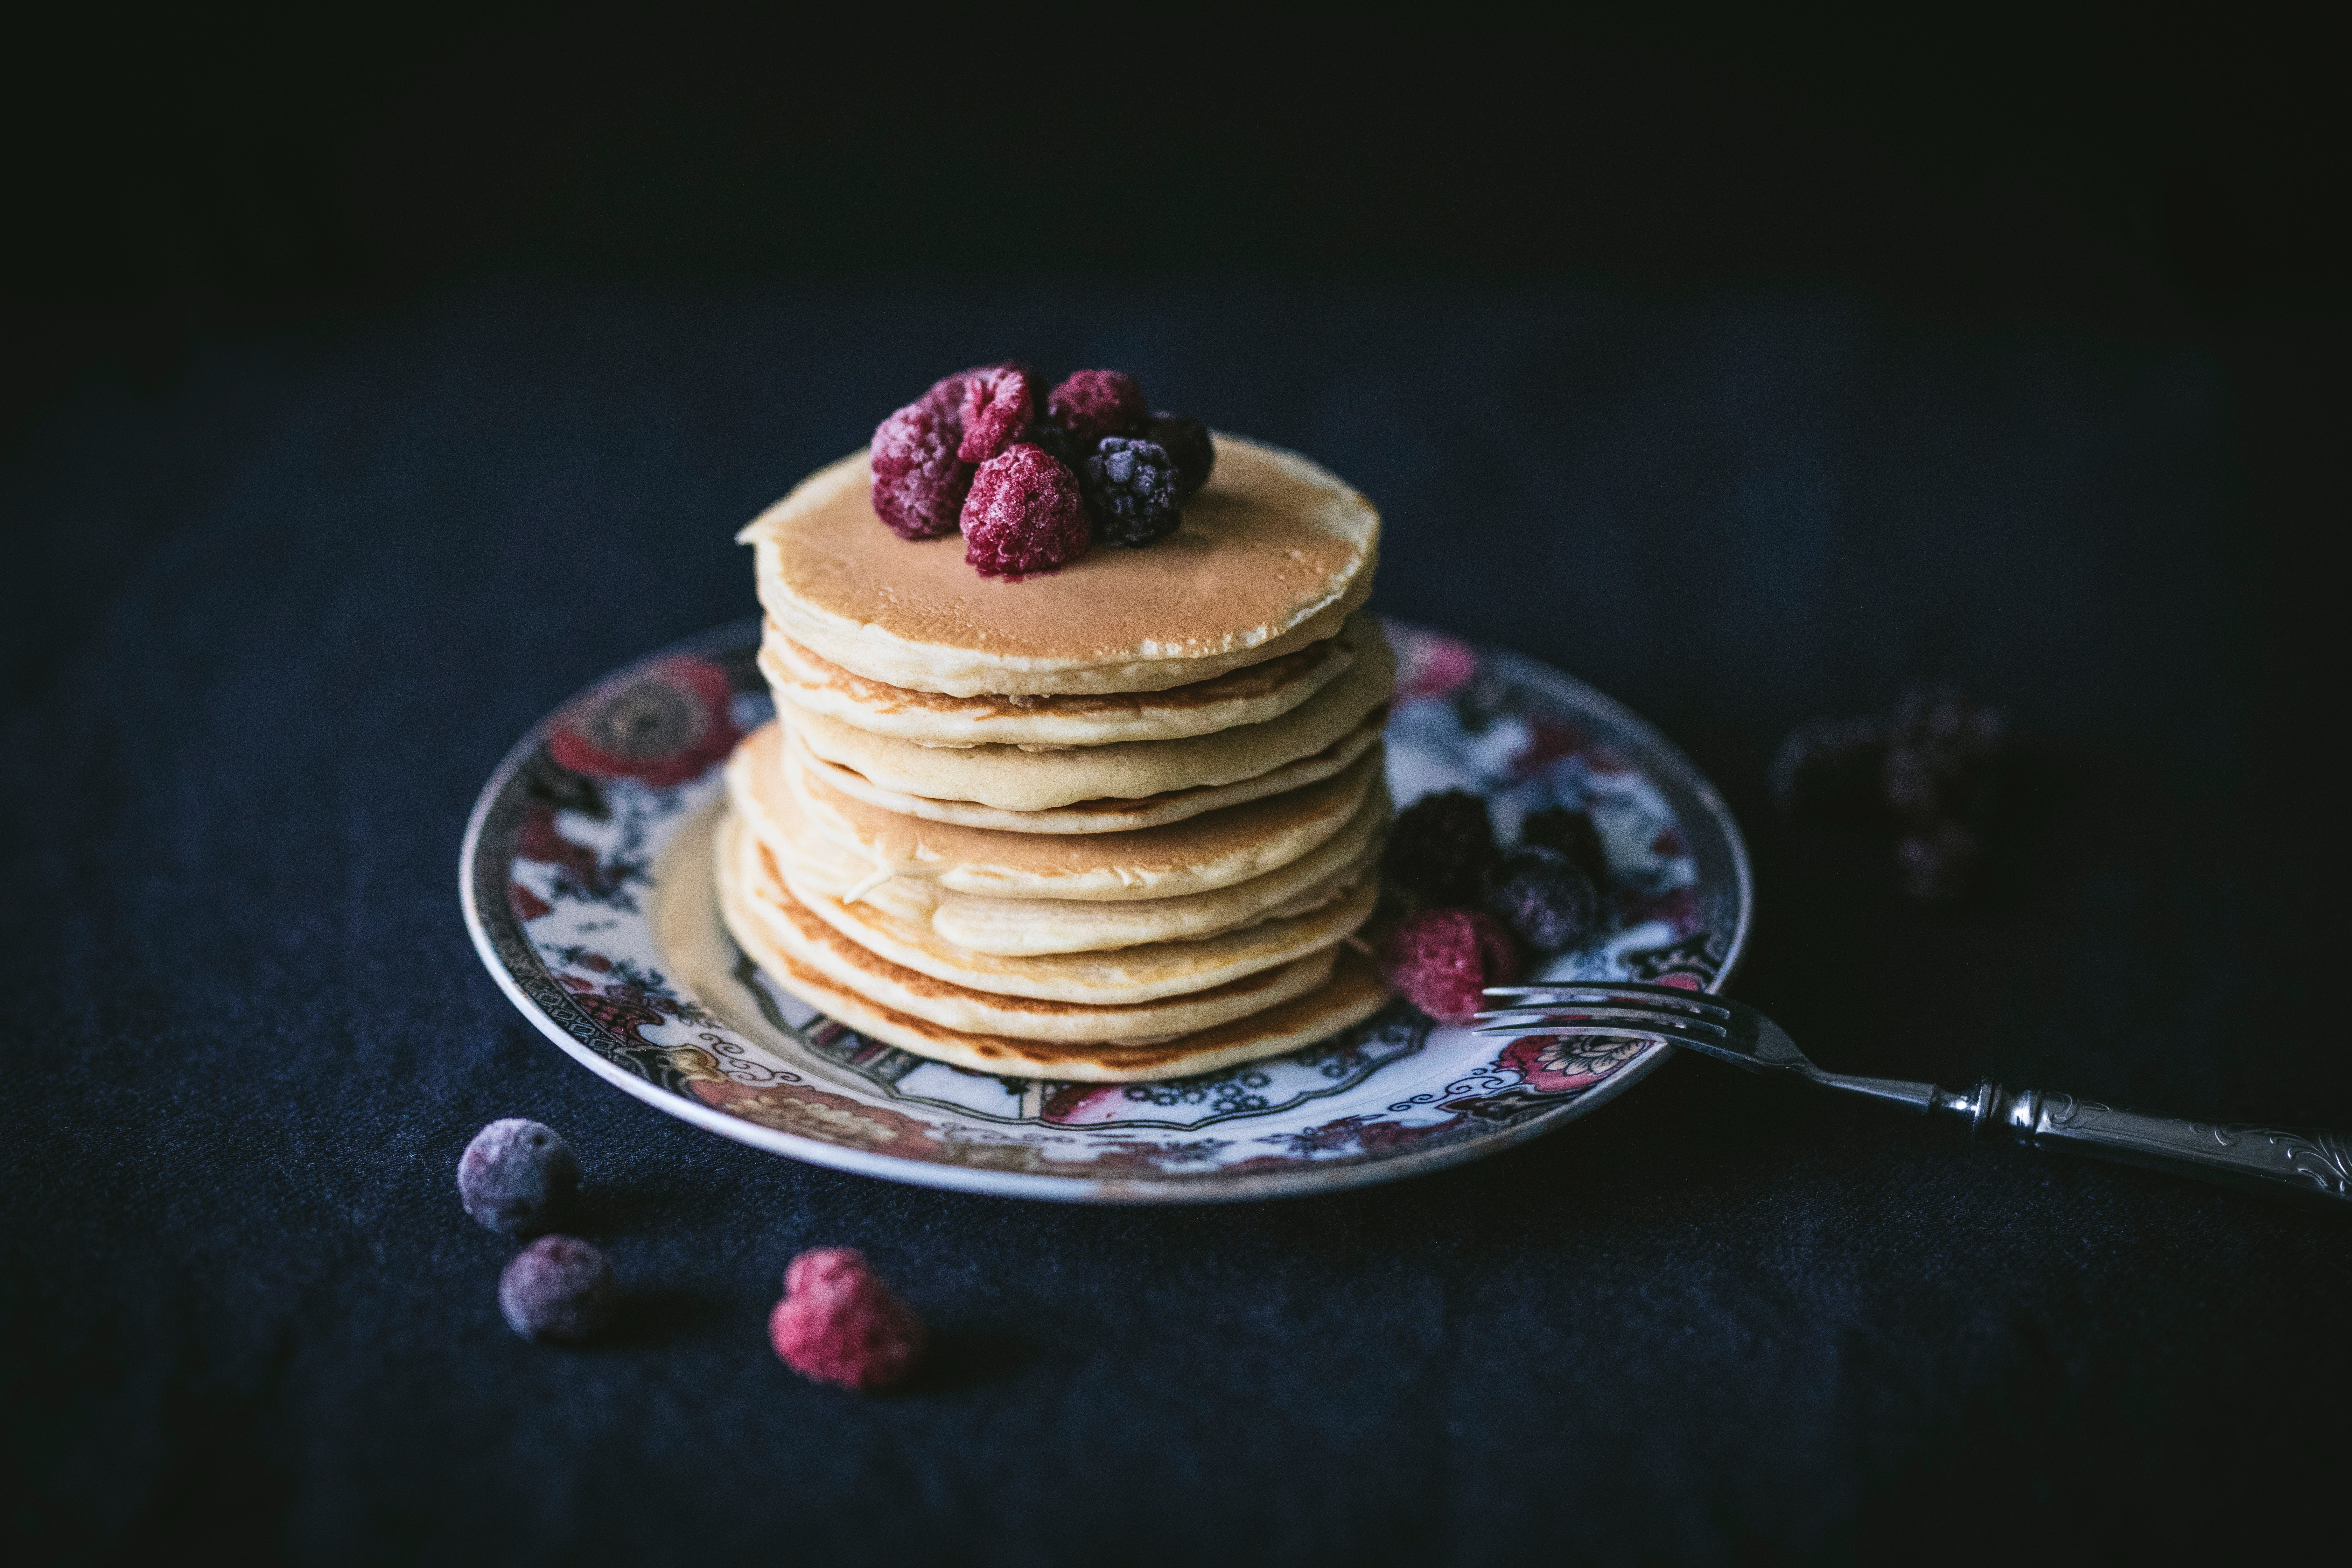 Stack of pancakes with fruit on top